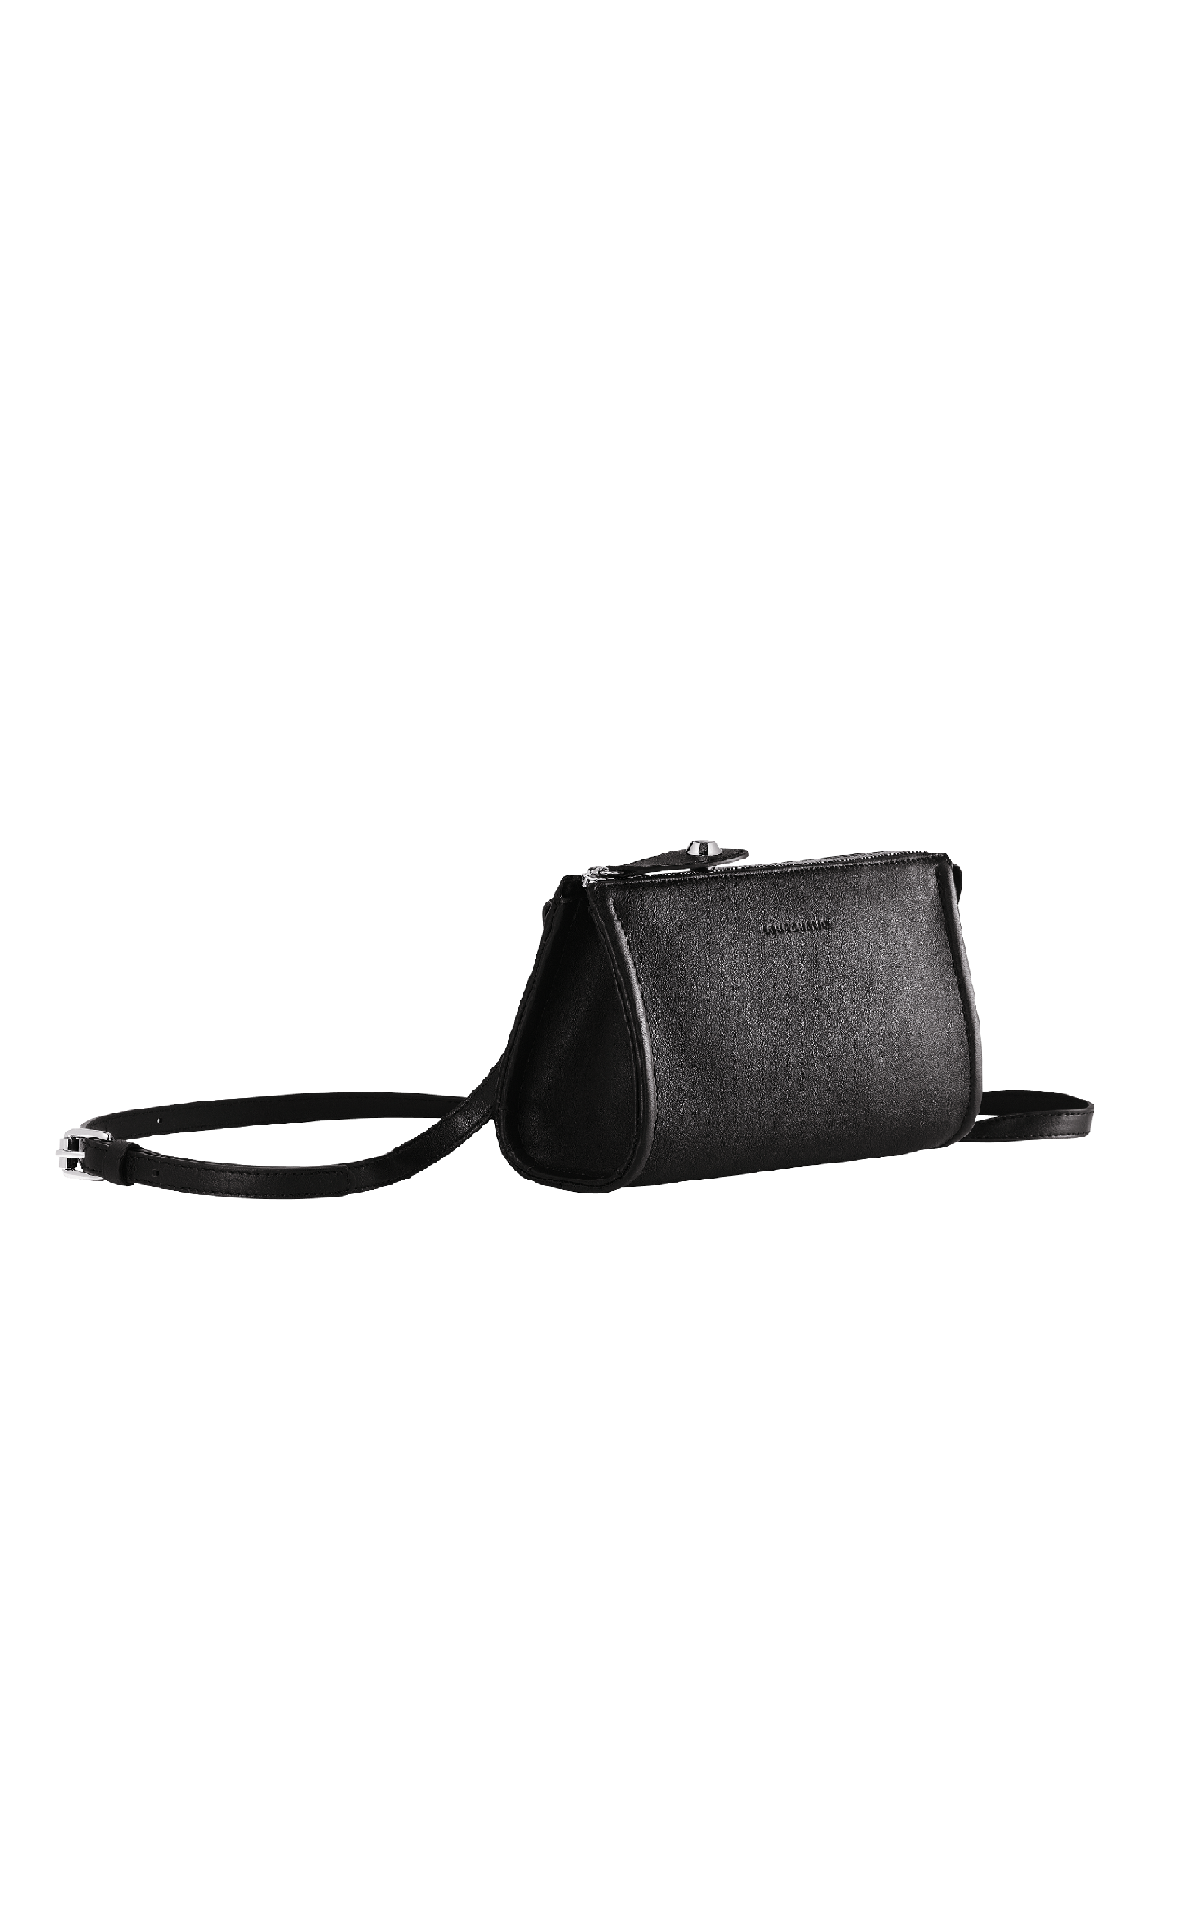 Small black bag Longchamp